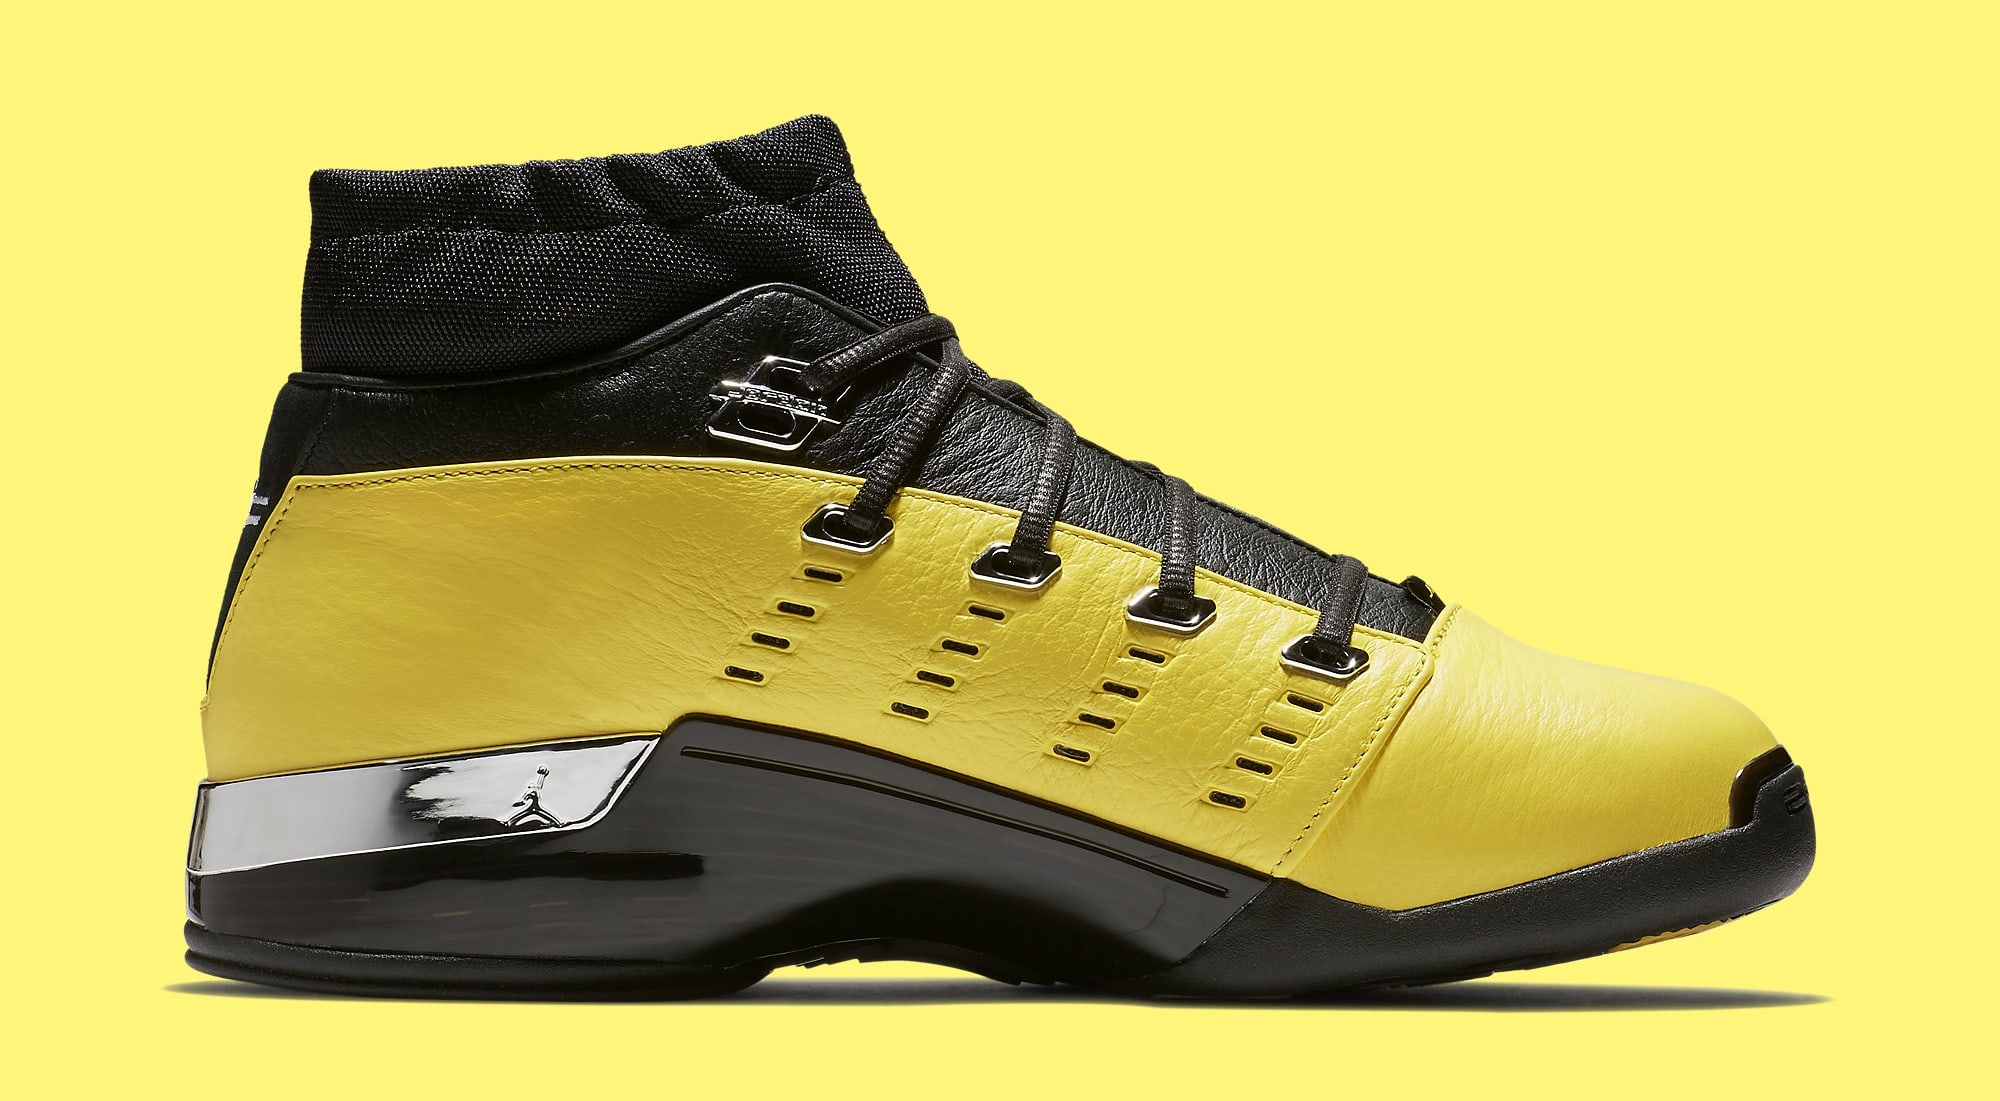 0b90df60c523 ... aliexpress image via nike solefly x air jordan 17 low lightning aj7321  003 a0f30 676b4